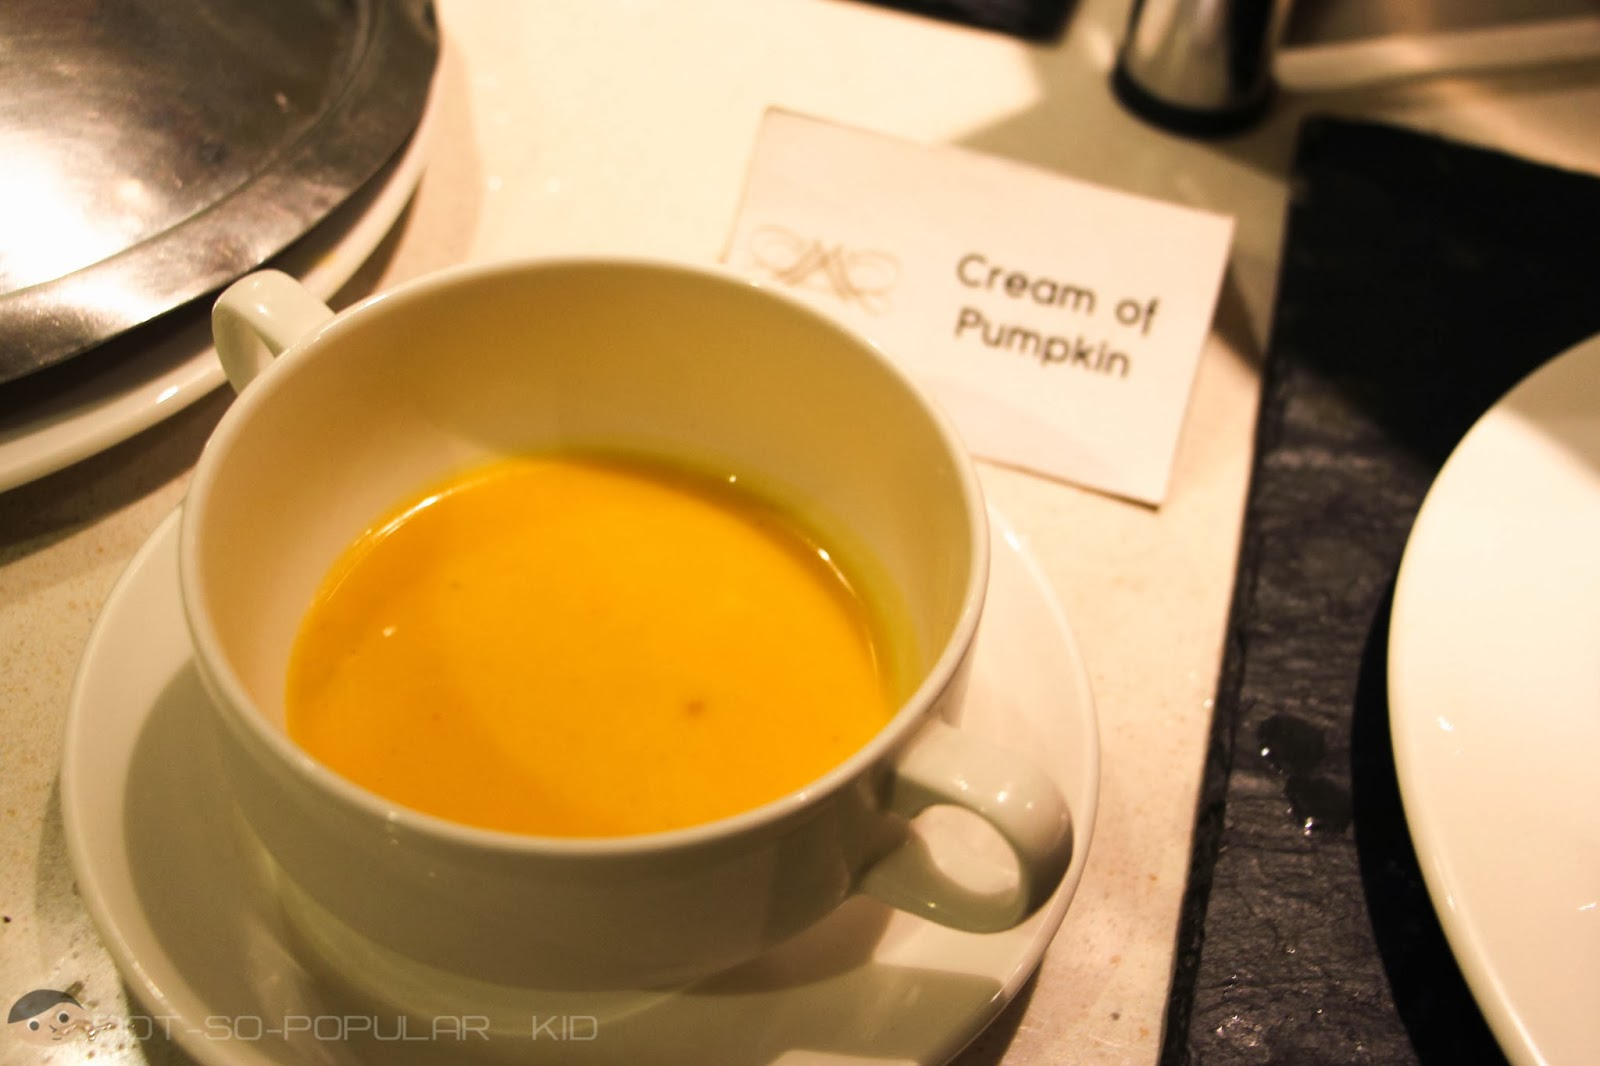 Freshly Made Cream of Pumpkin Soup